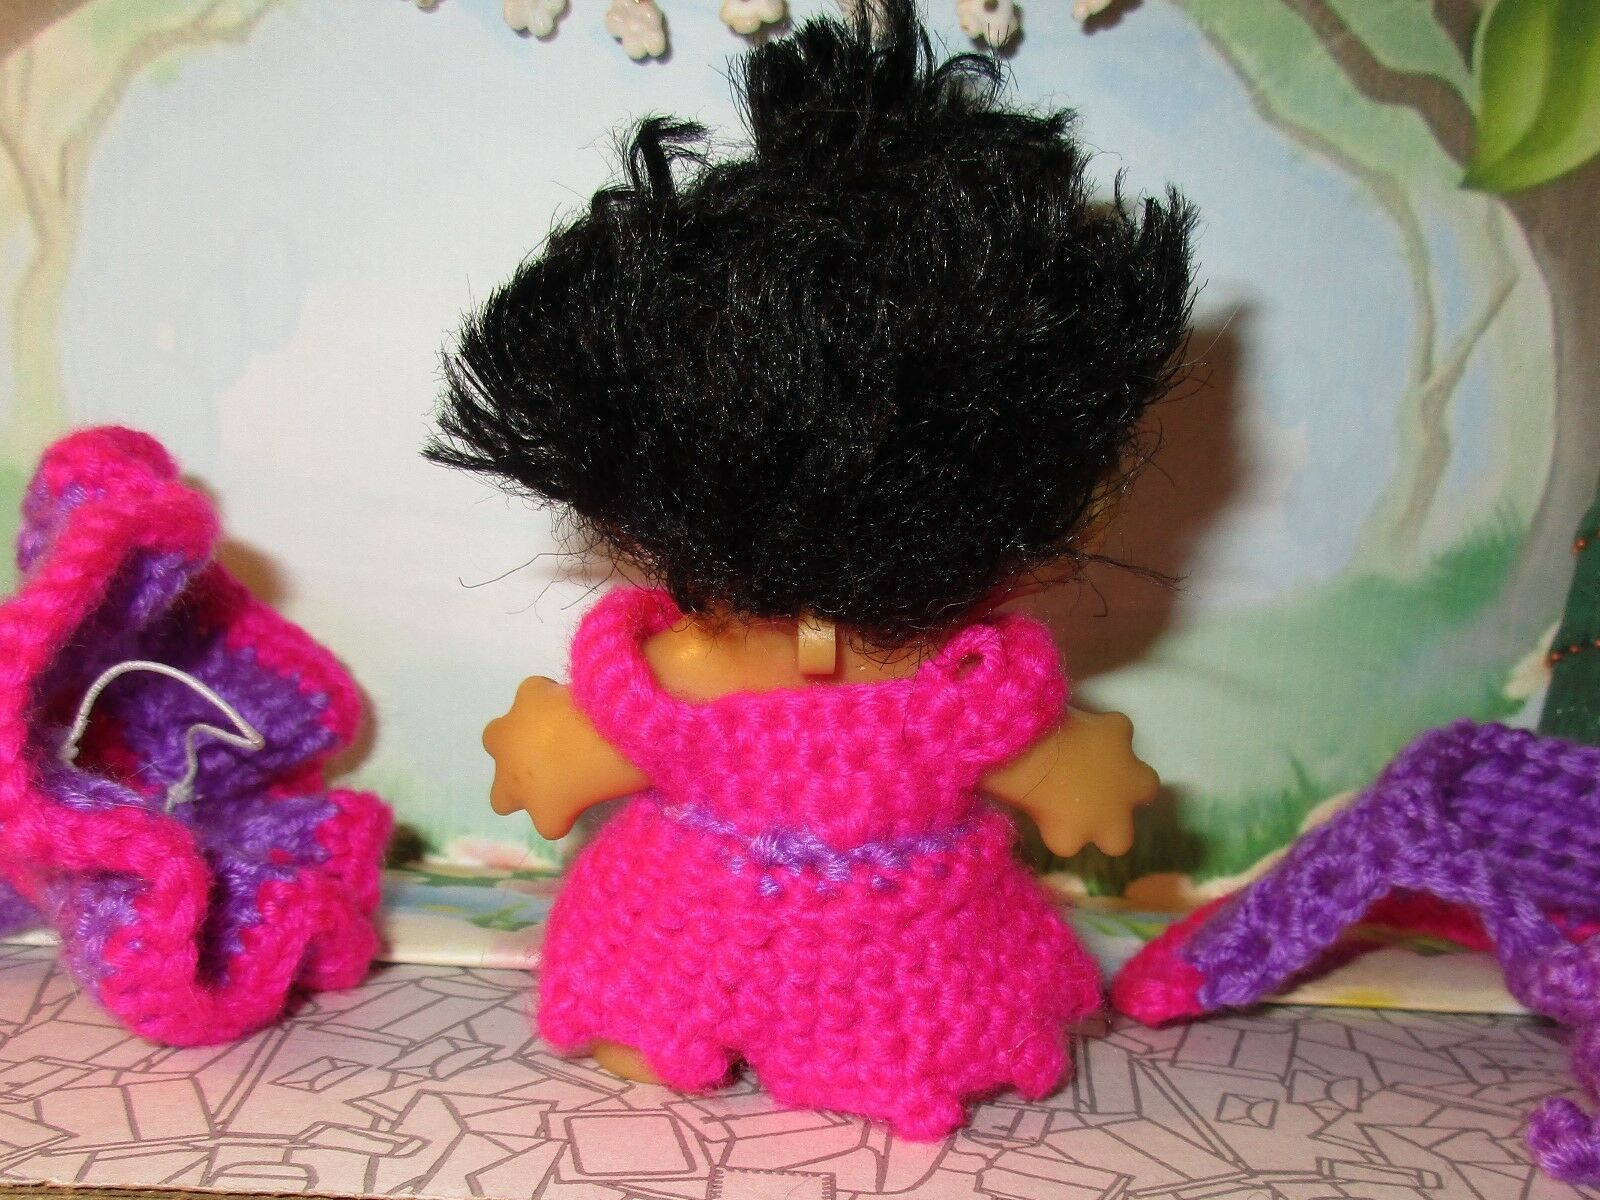 SPRING WITCH TROLL 3 inch crochet dress hat cape panties tab dam doll pink 60's image 8